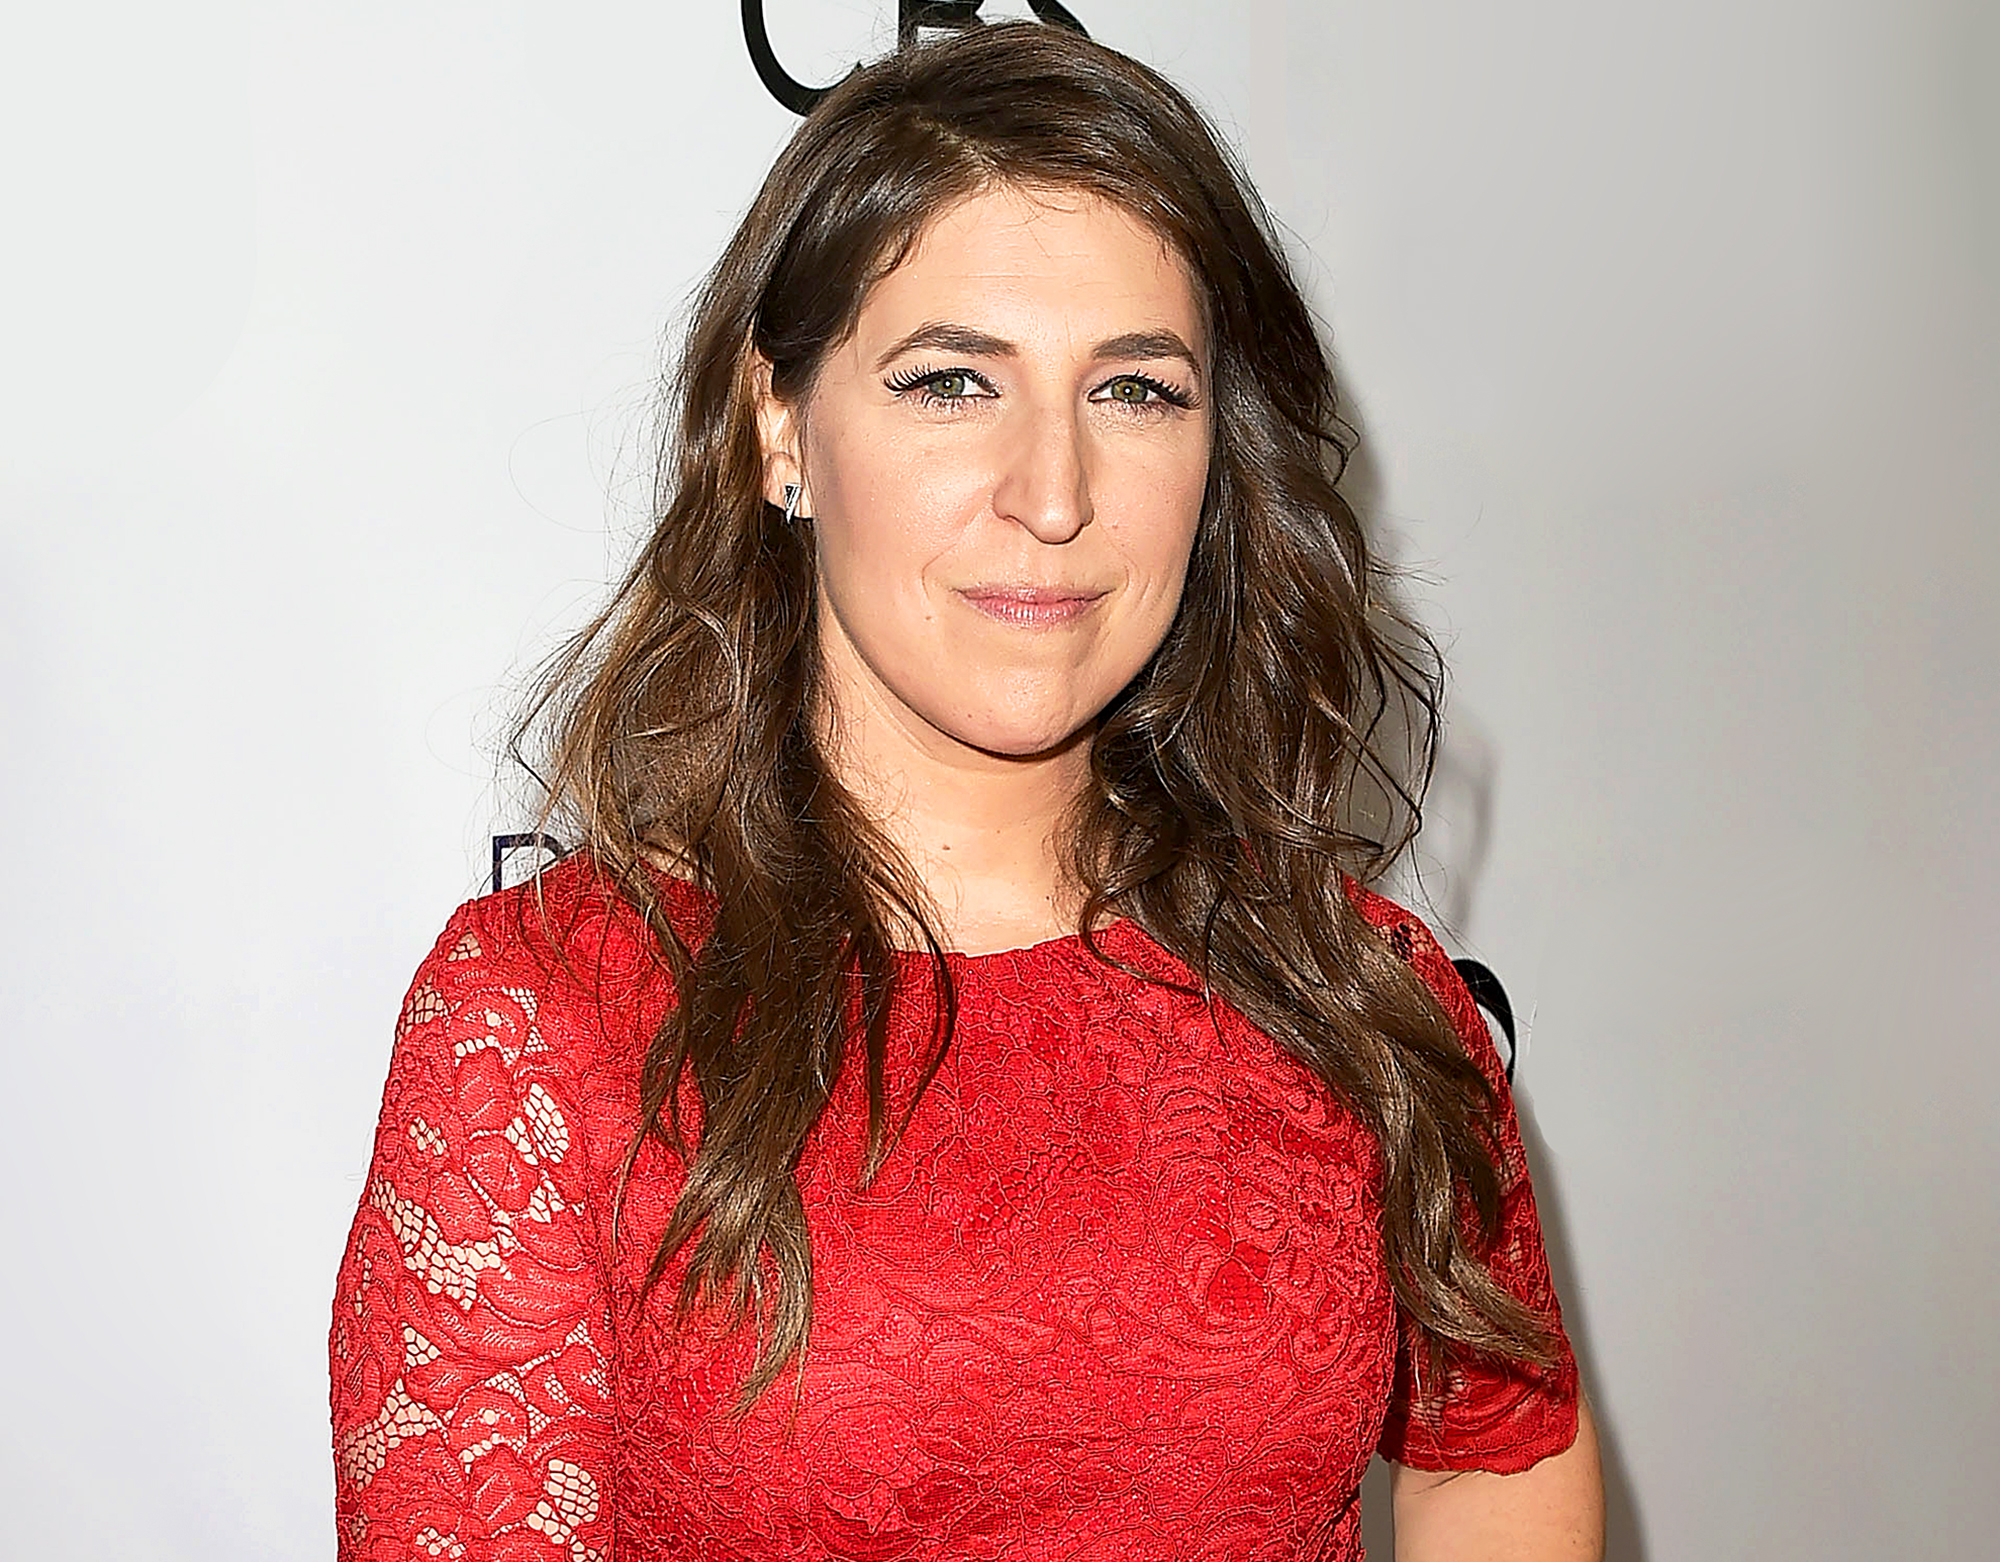 mayim bialik apologizes for controversial op-ed